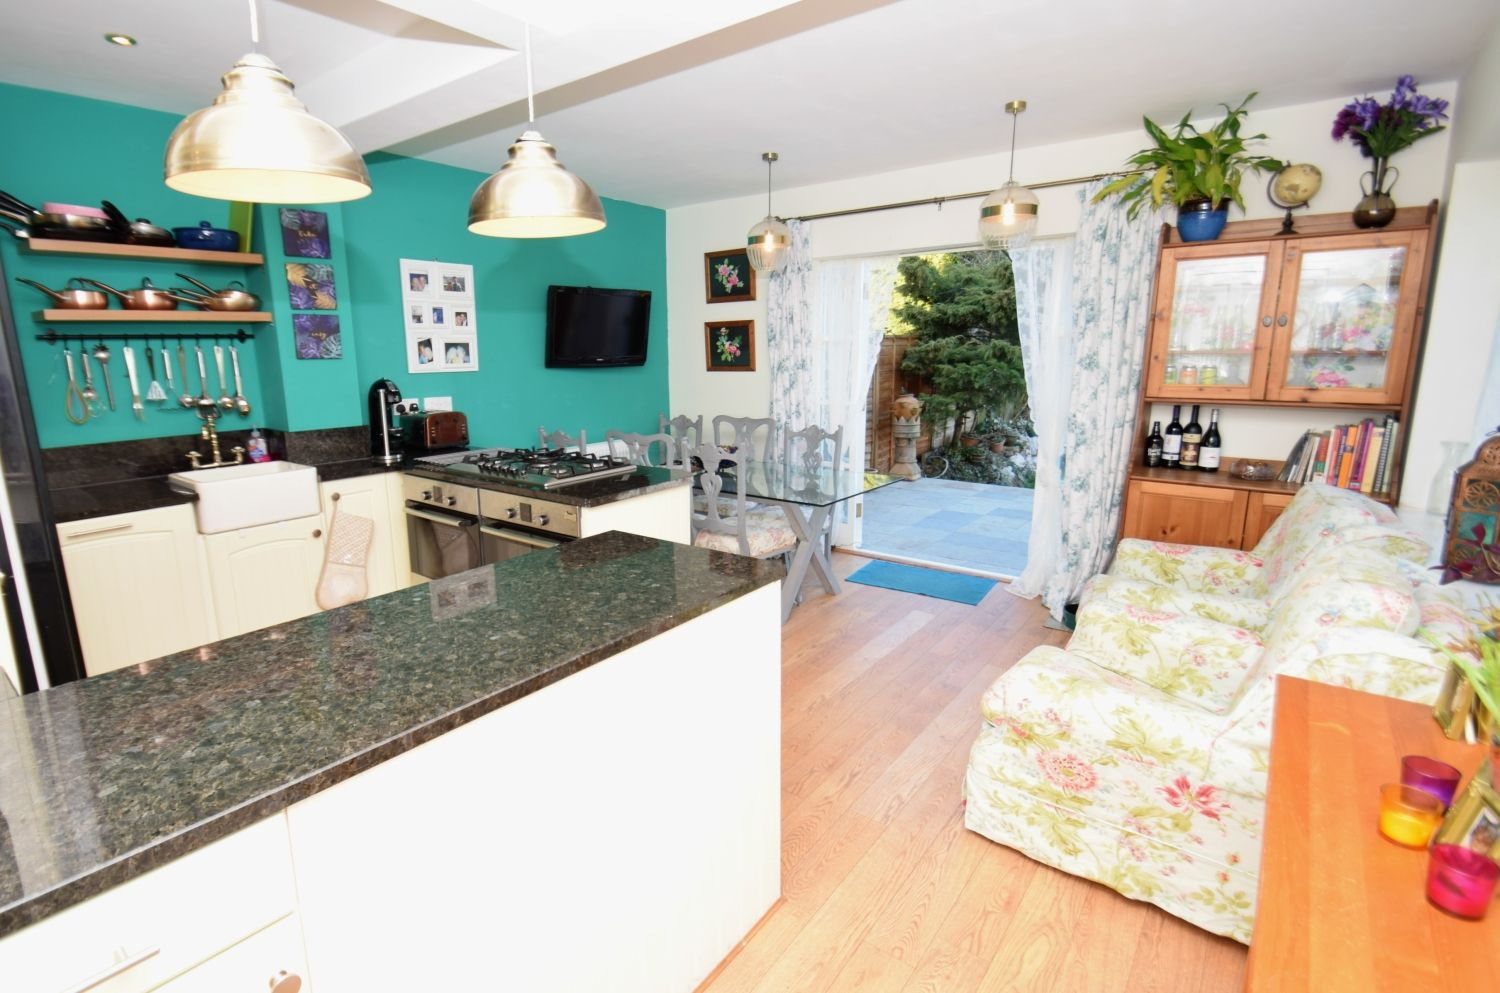 4 bed semi-detached for sale in Upland Grove, Bromsgrove, B61 9